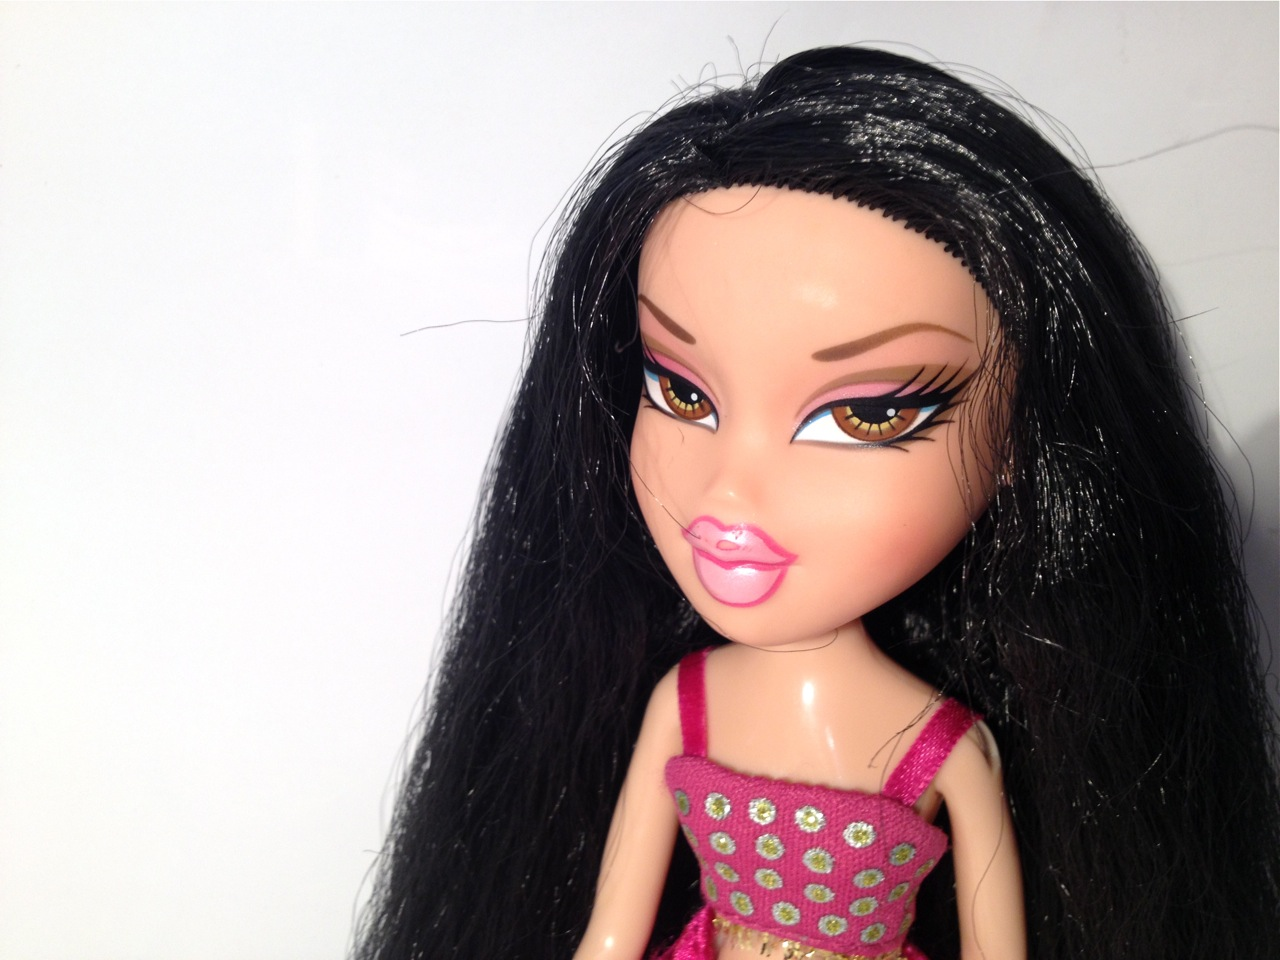 bratz dolls by mga entertainment a guest overview the toy box